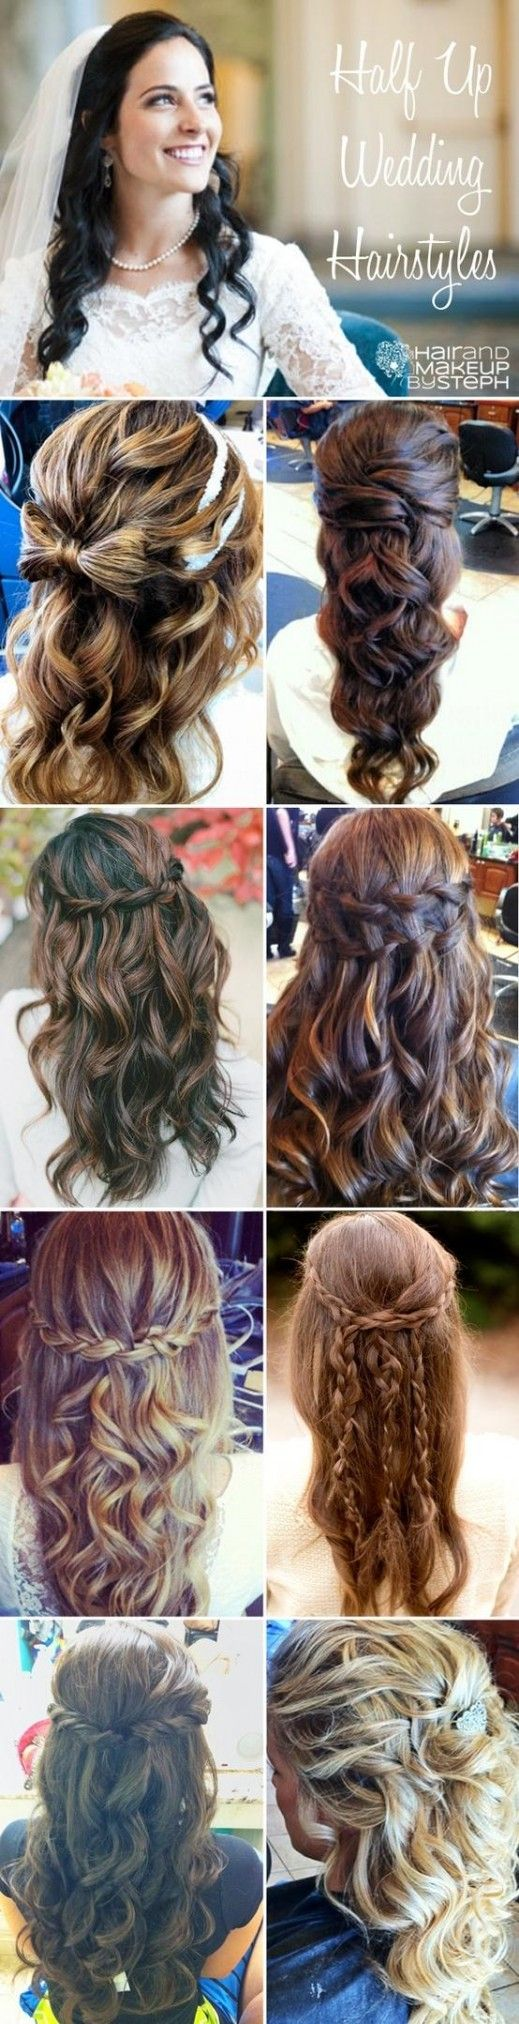 Best images about Hairstyles on Pinterest Wedding hairstyles